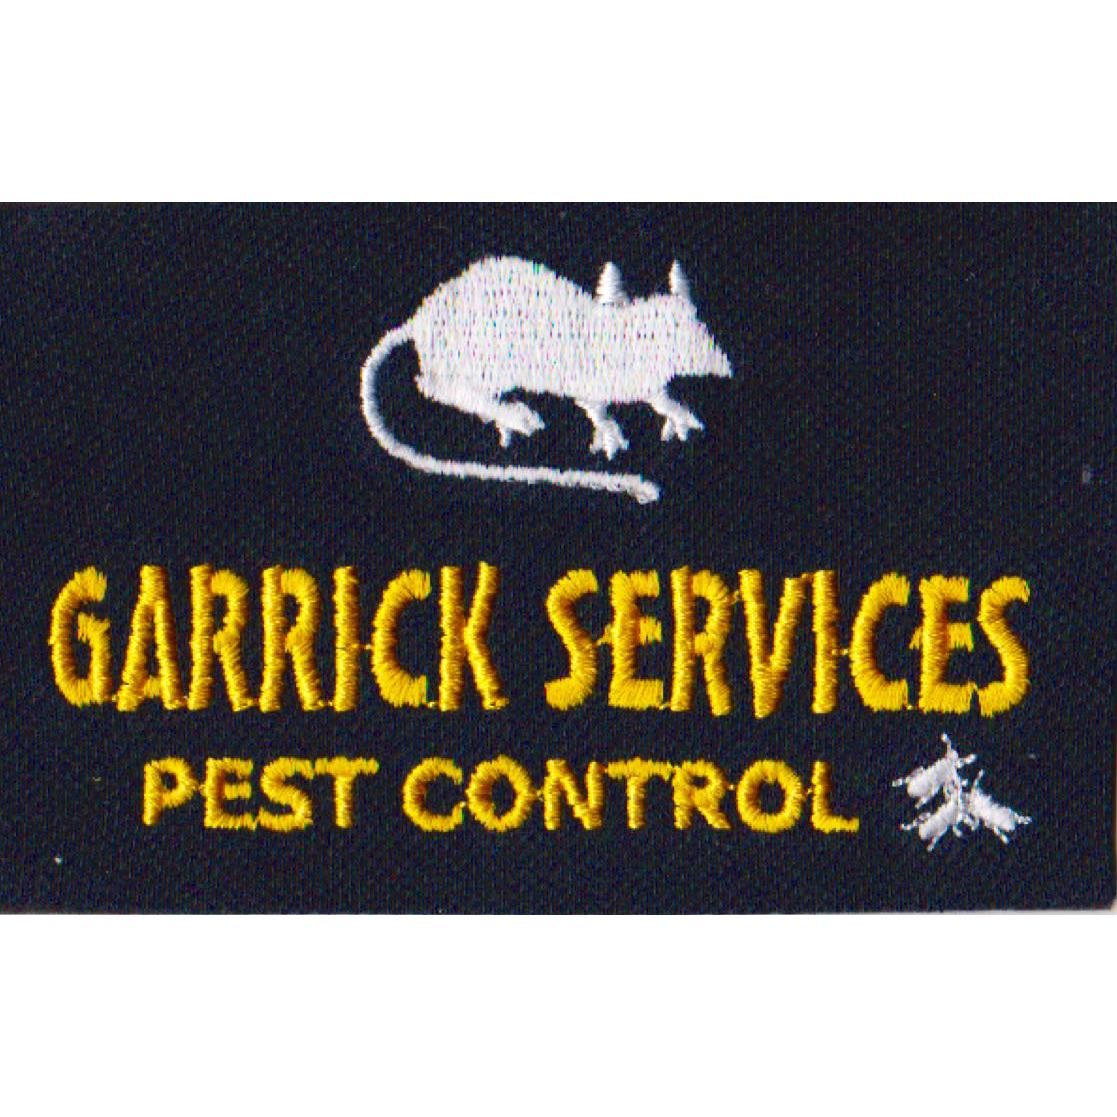 Garrick Services Pest Control Ltd - Edgware, London HA8 0HG - 020 8906 0086 | ShowMeLocal.com